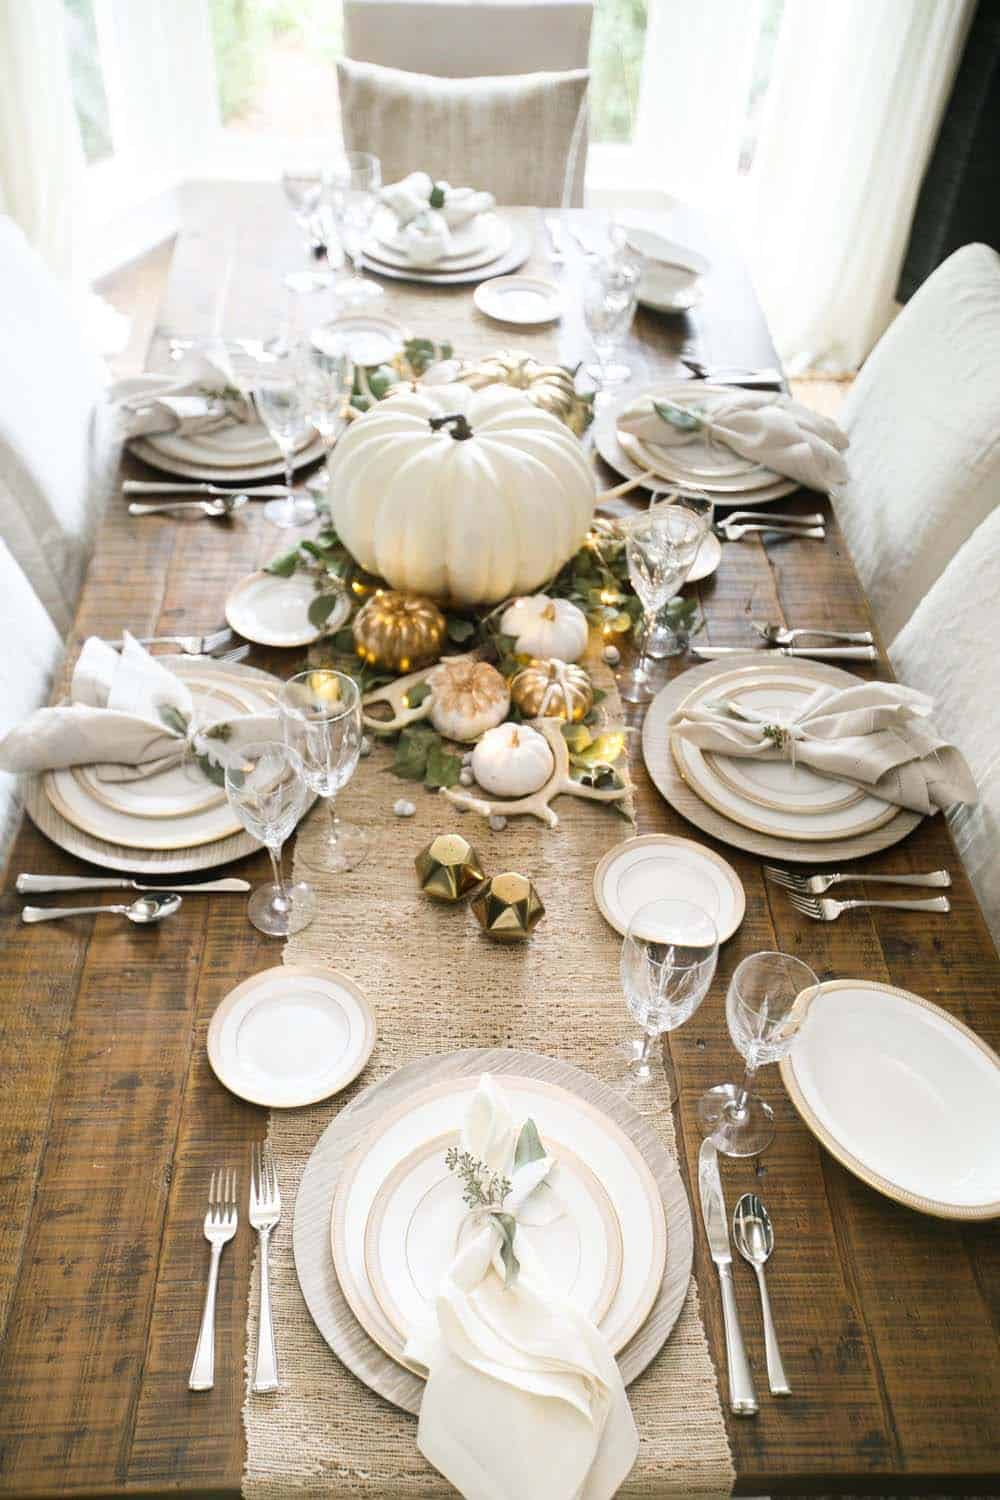 Amazing-Fall-Table-Decor-Ideas-For-Decorating-04-1-Kindesign